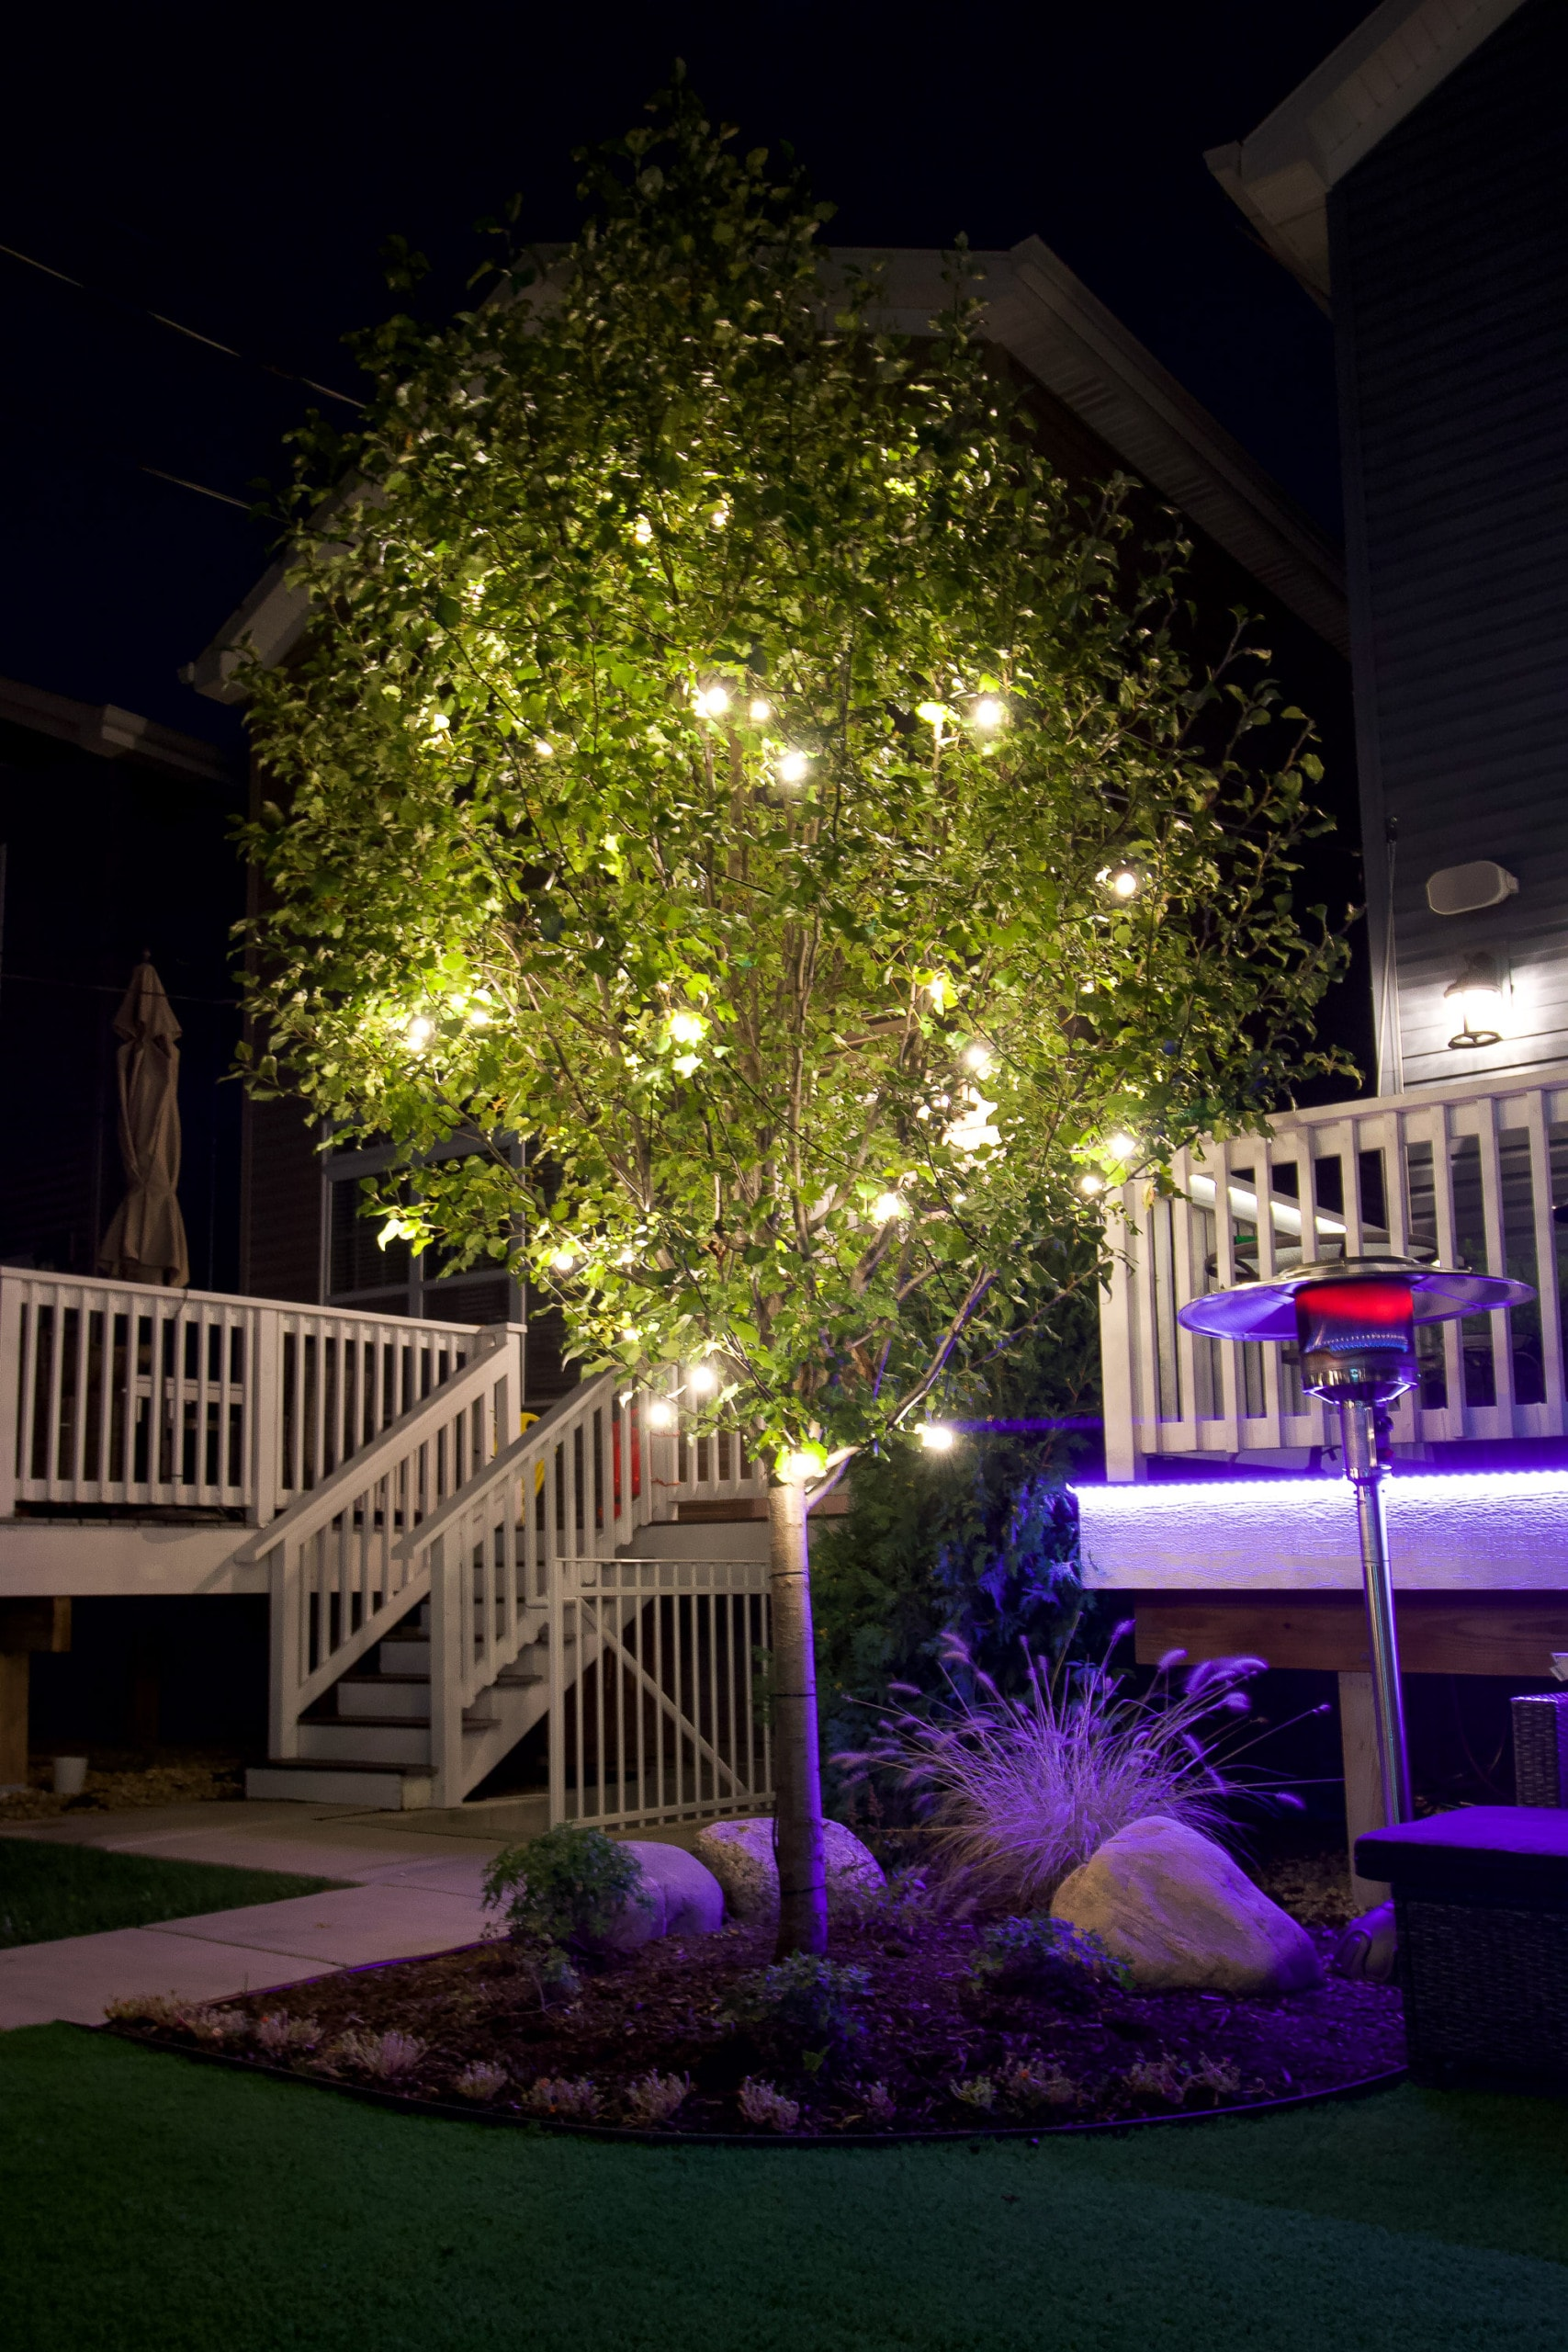 Adding lighting to create a beautiful outdoor room